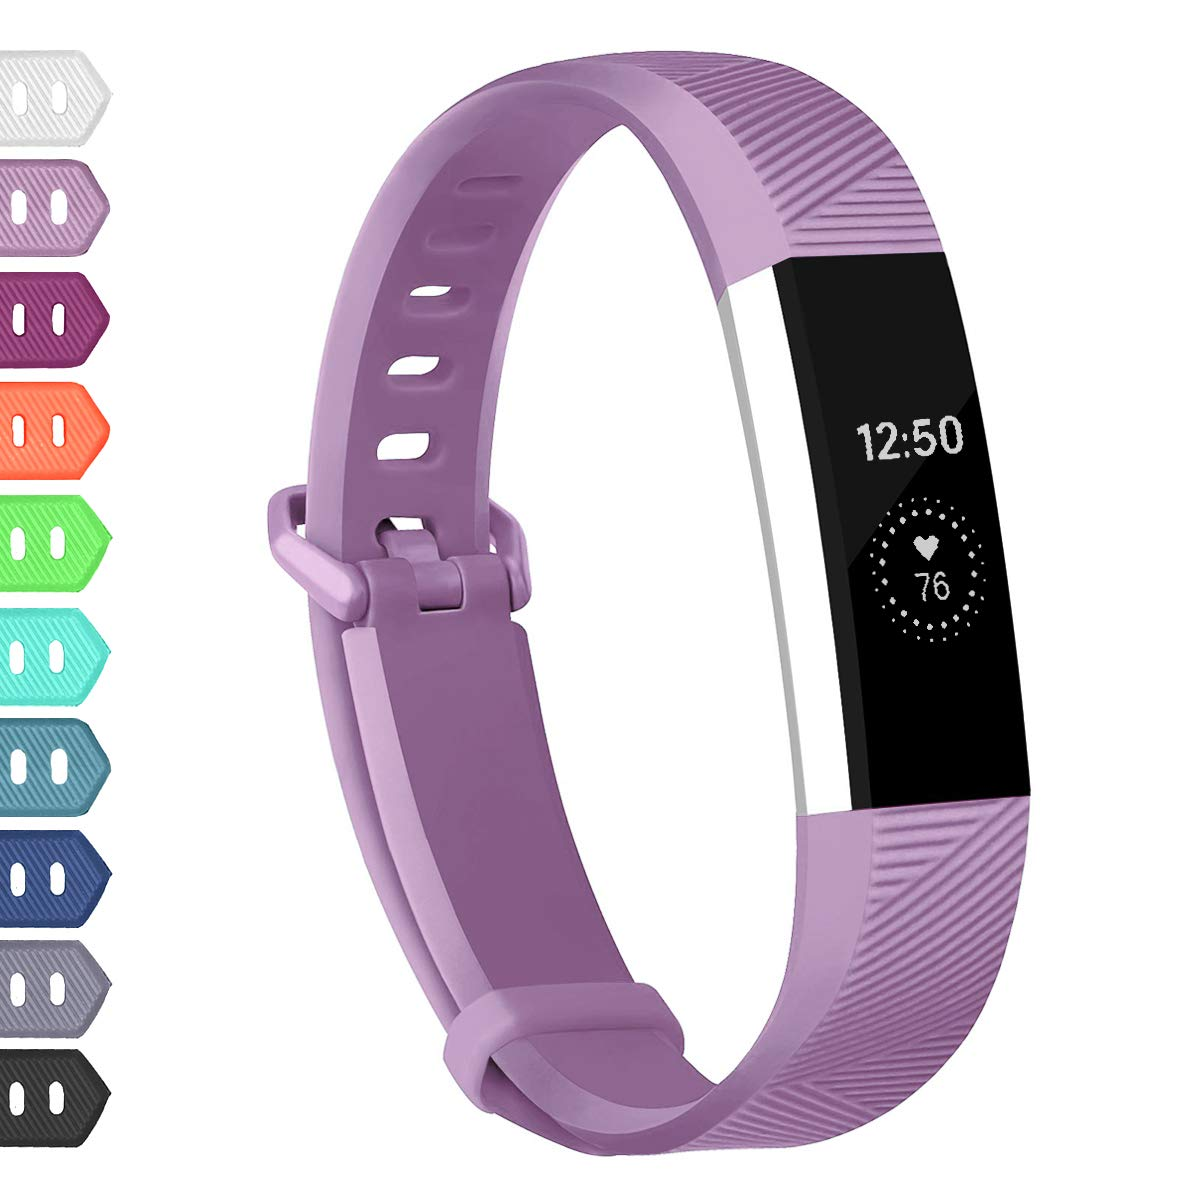 Wekin Replacement Bands Compatible with Fitbit Alta HR and Alta, Breathable Sport Silicone Wristbands Bracelet with Secure Metal Buckle for Woman Men by Wekin